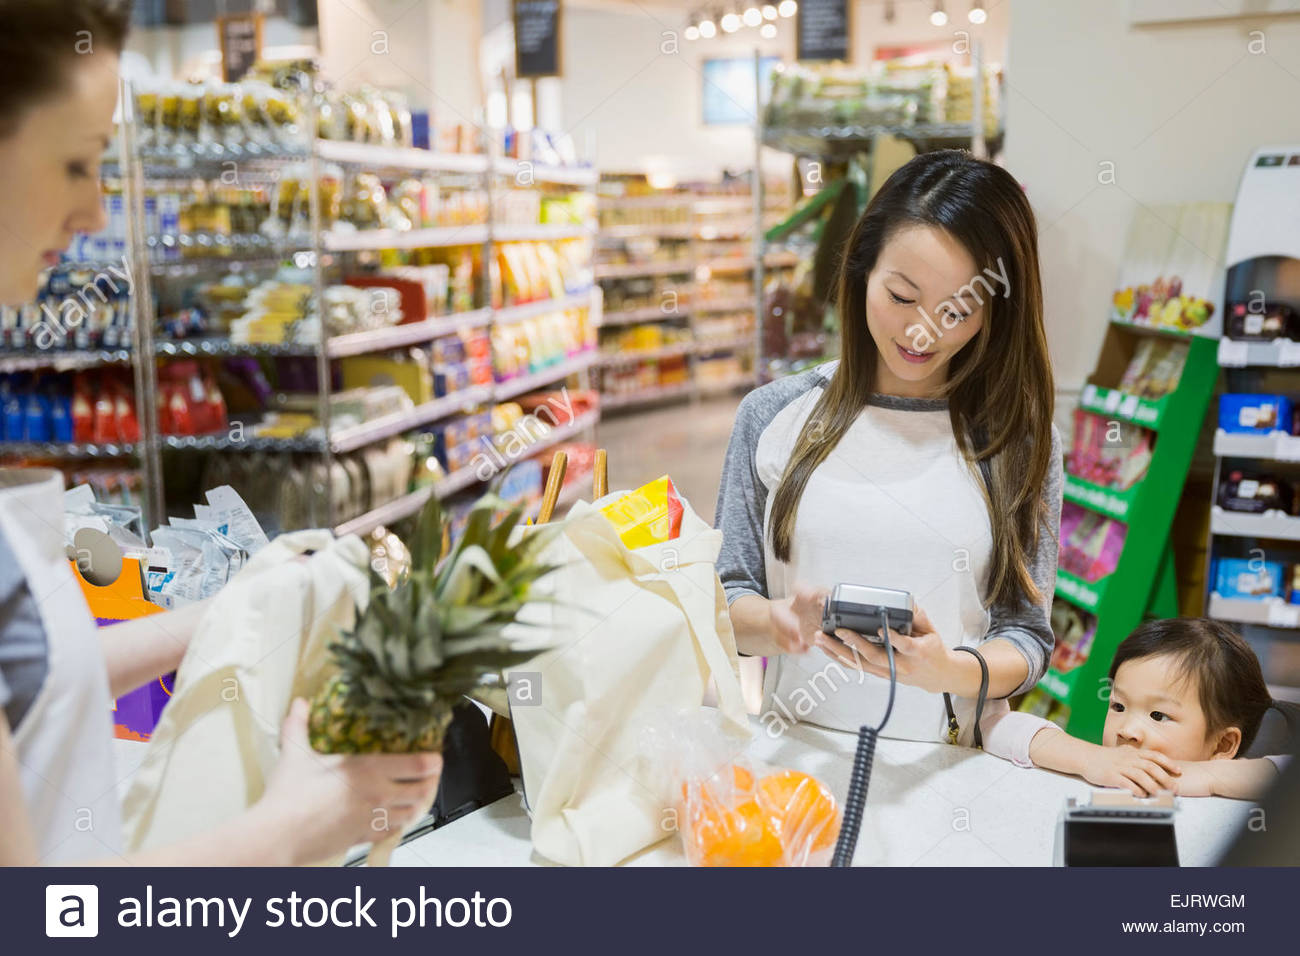 Grocery Store Checkout